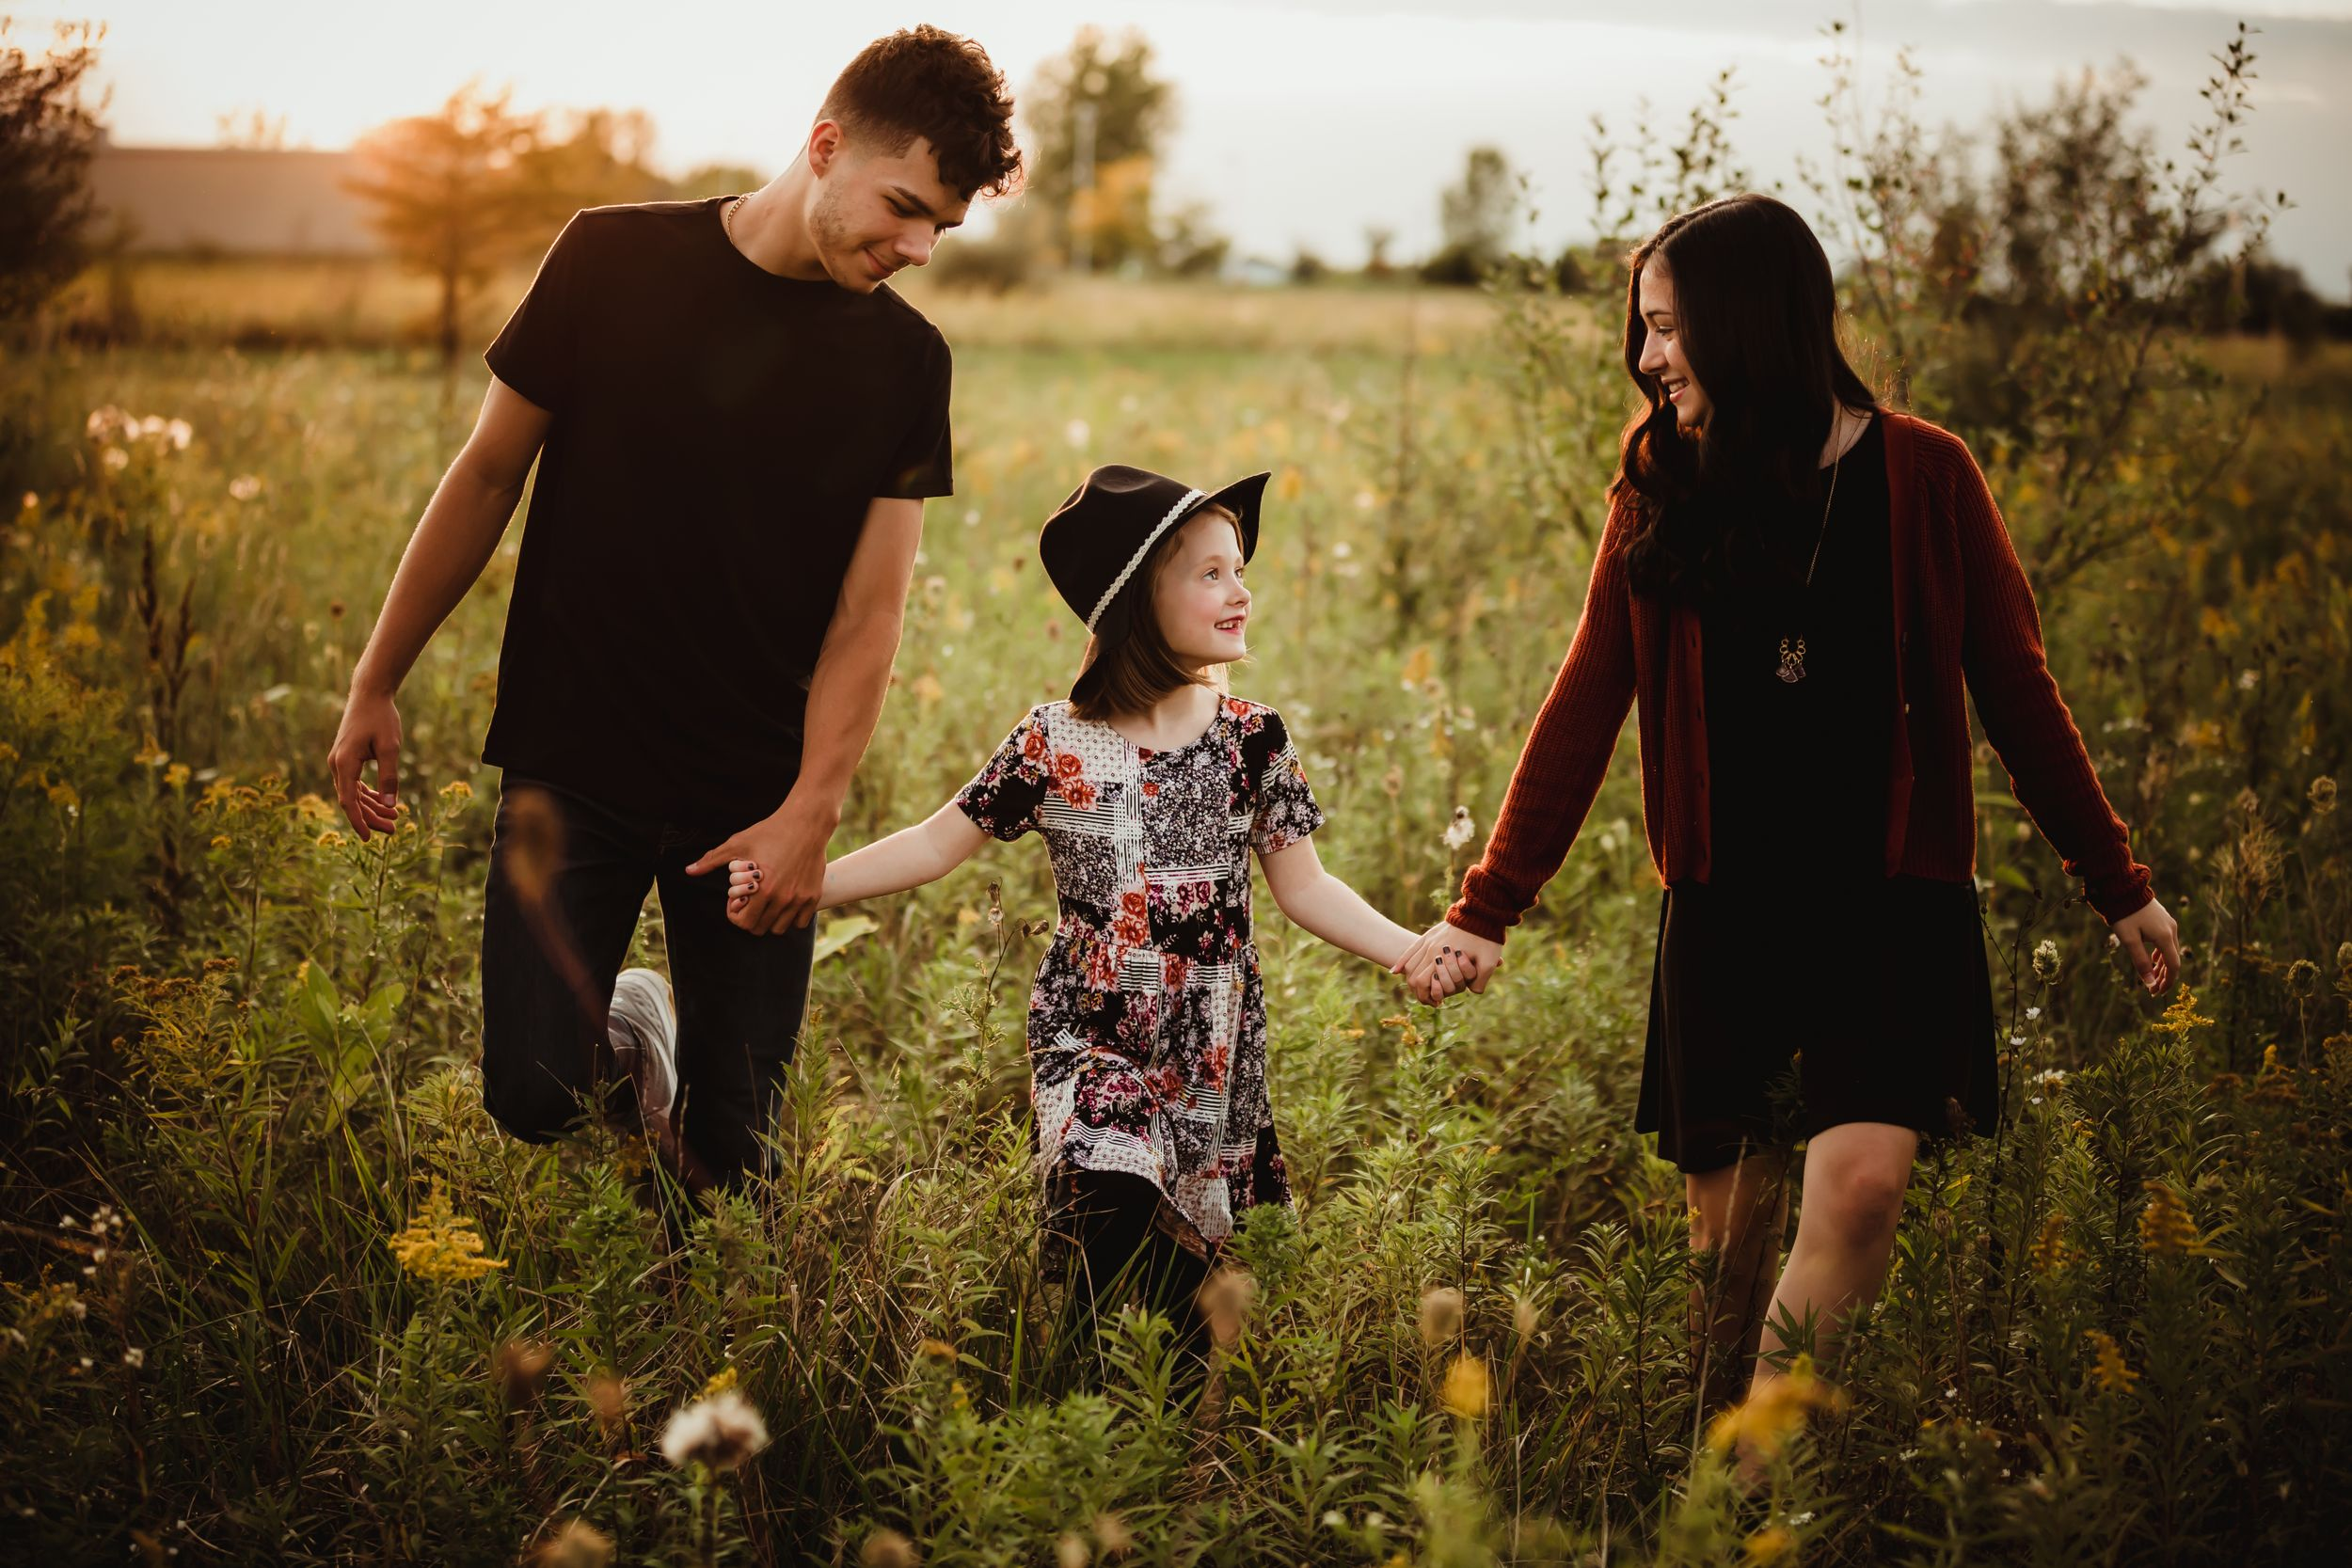 Older son and daughter holding younger daughter's hand and walking though a field at sunset.